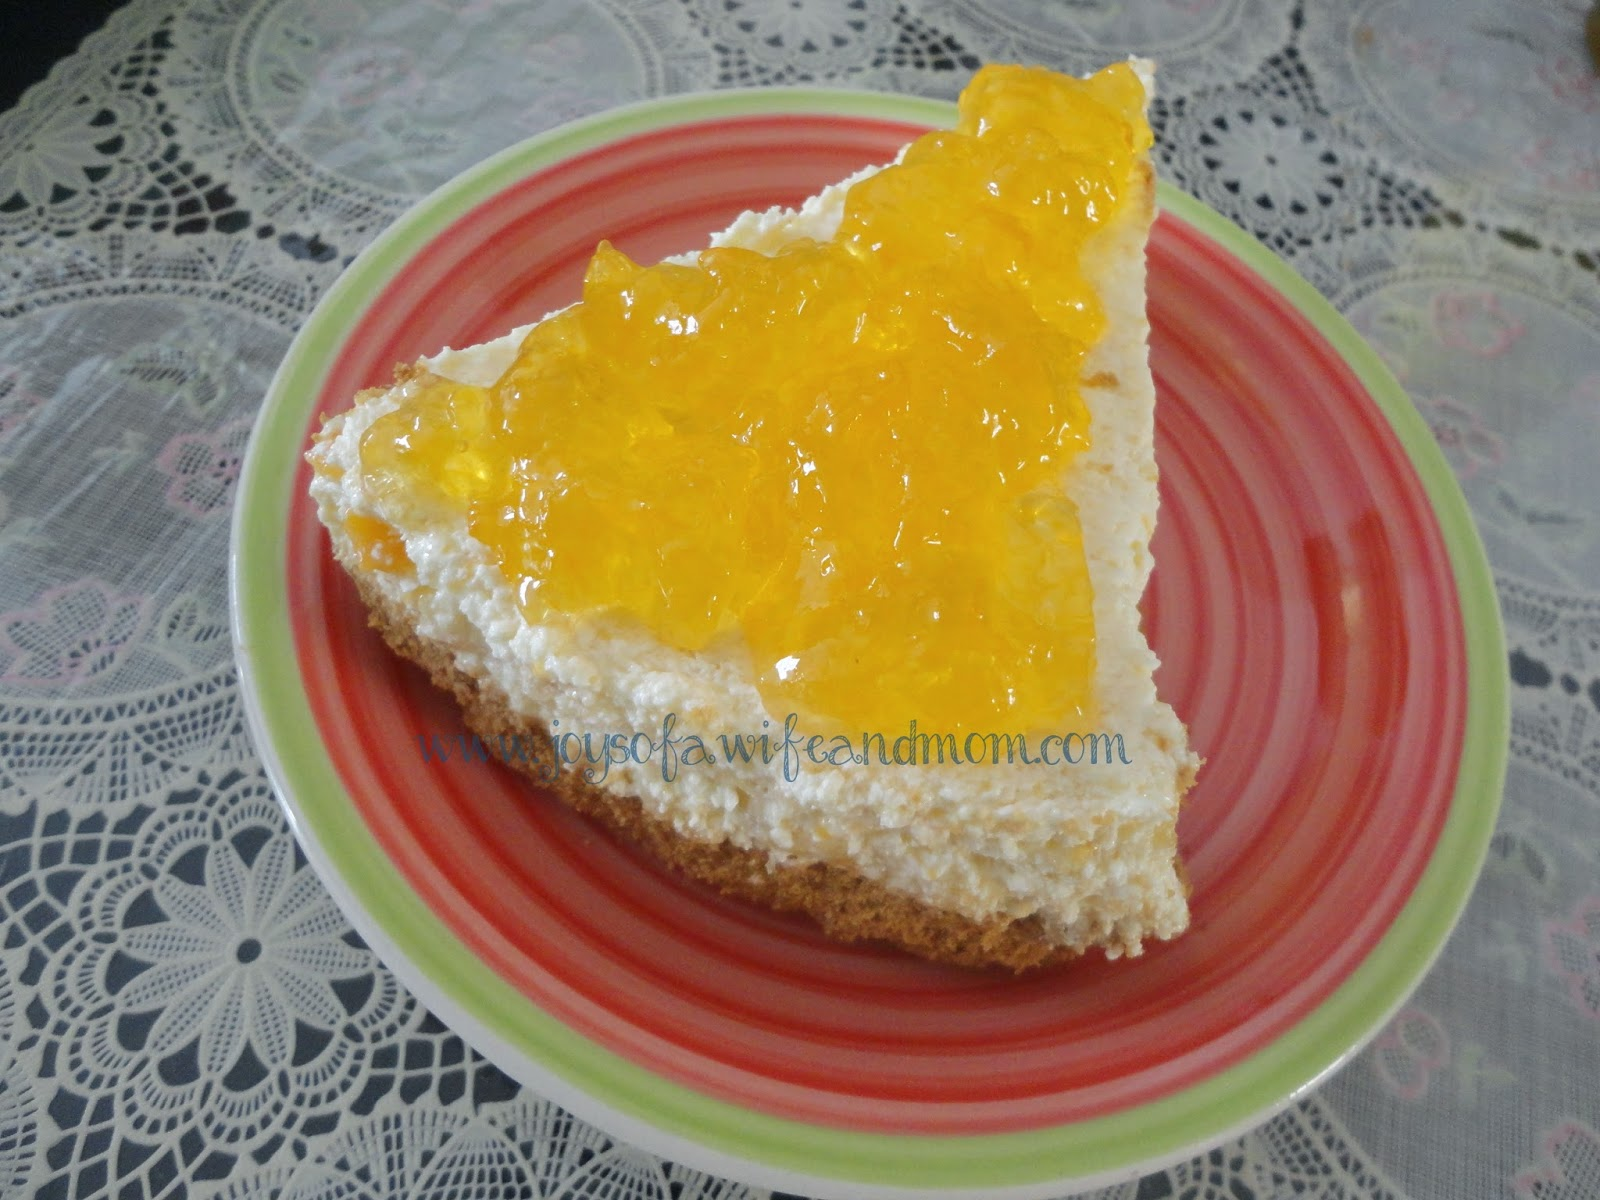 Home-made No Bake Mango Cheesecake